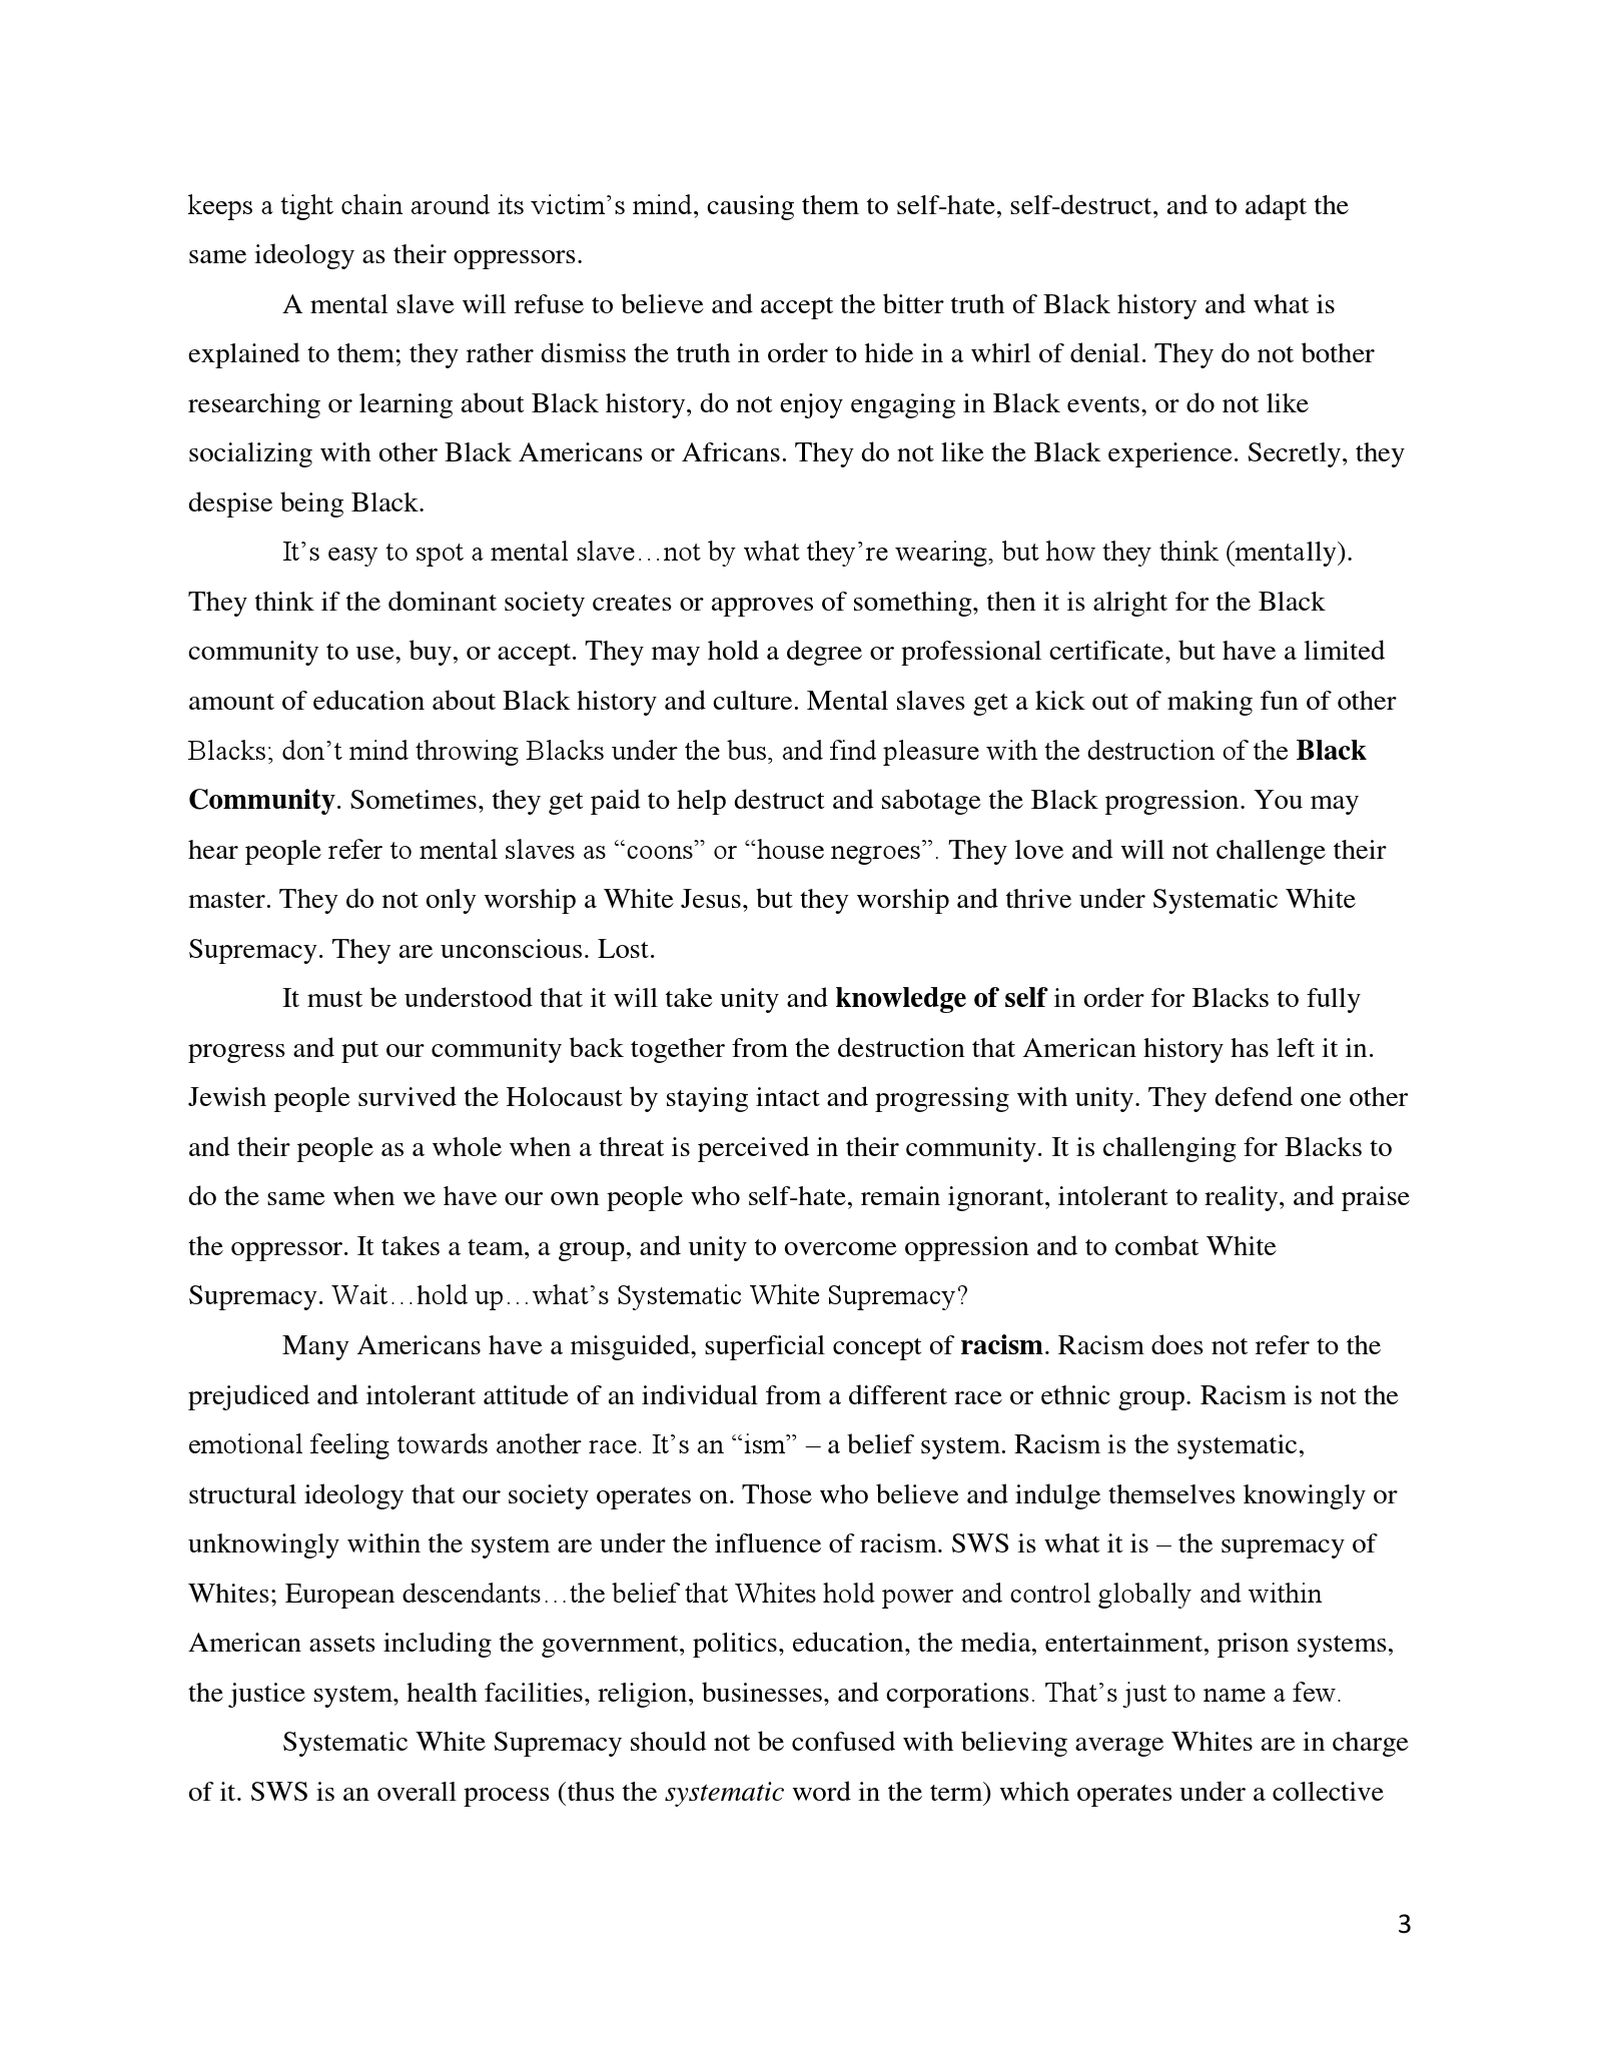 003 Large Essay Example On Exceptional Racism In Othello Sports And Classism Full